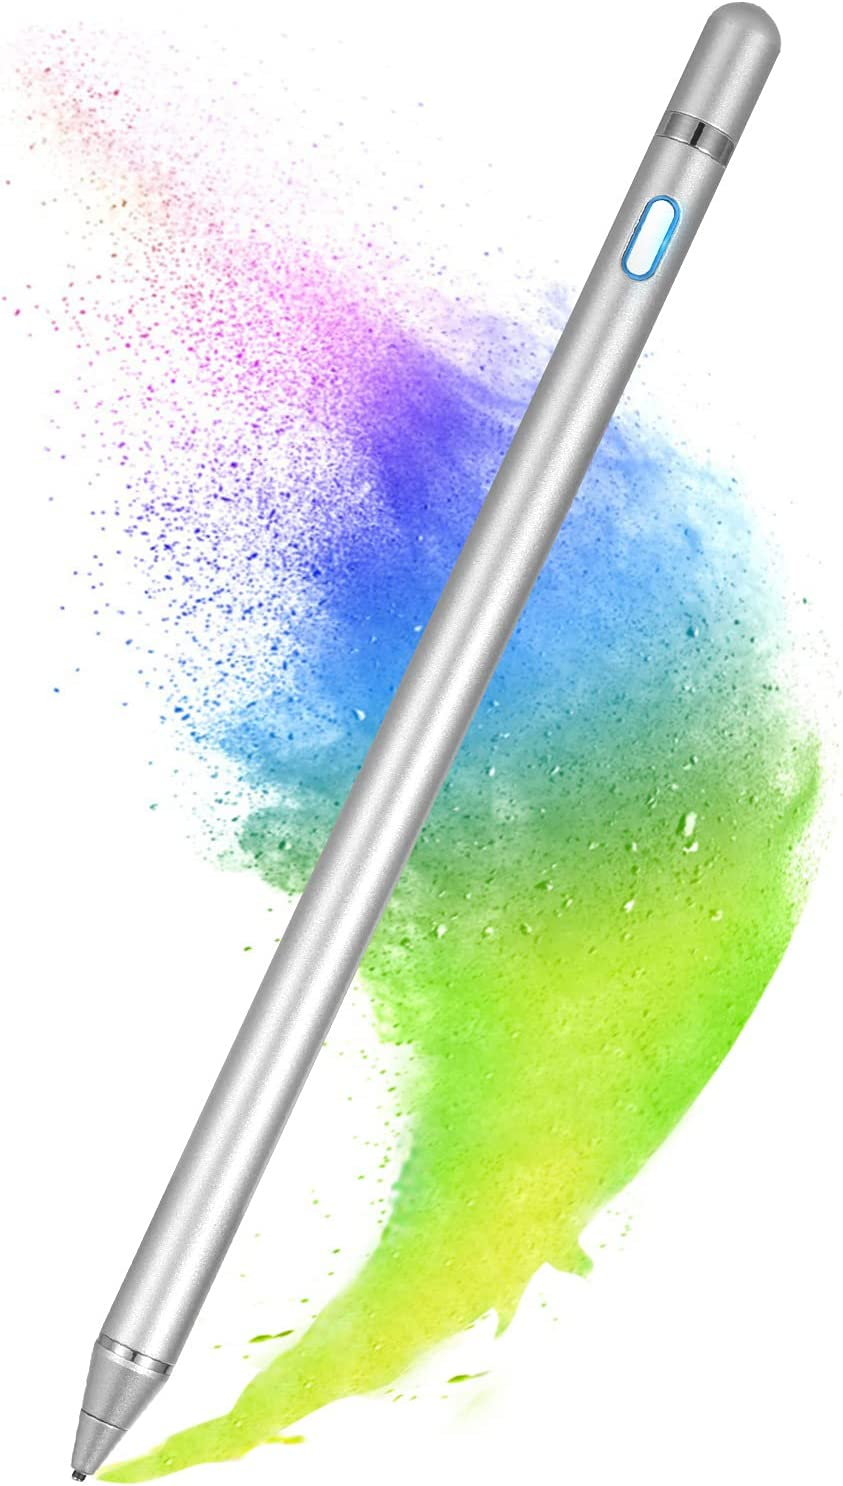 Stylus Pen for Touch Screens, Active Pen Digital Pencil Fine Point Compatible with iPhone iPad and Other Tablets (Silver)